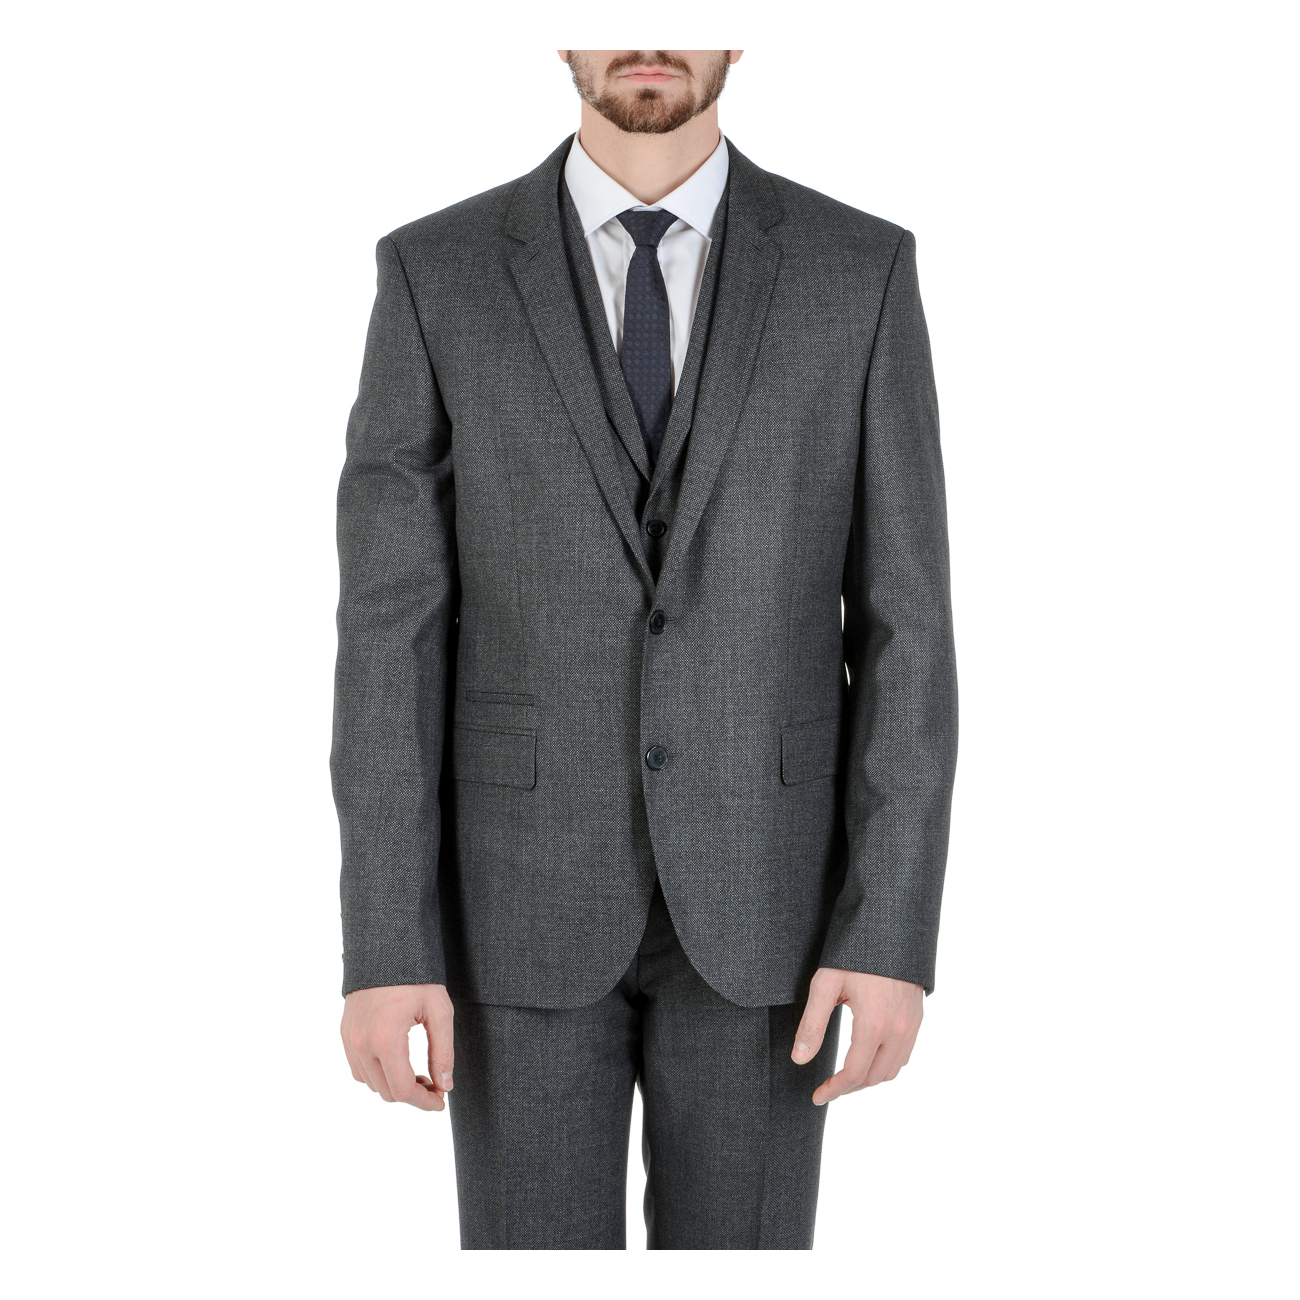 hugo-boss-mens-suit-grey-aneo-wiad-hilor-2